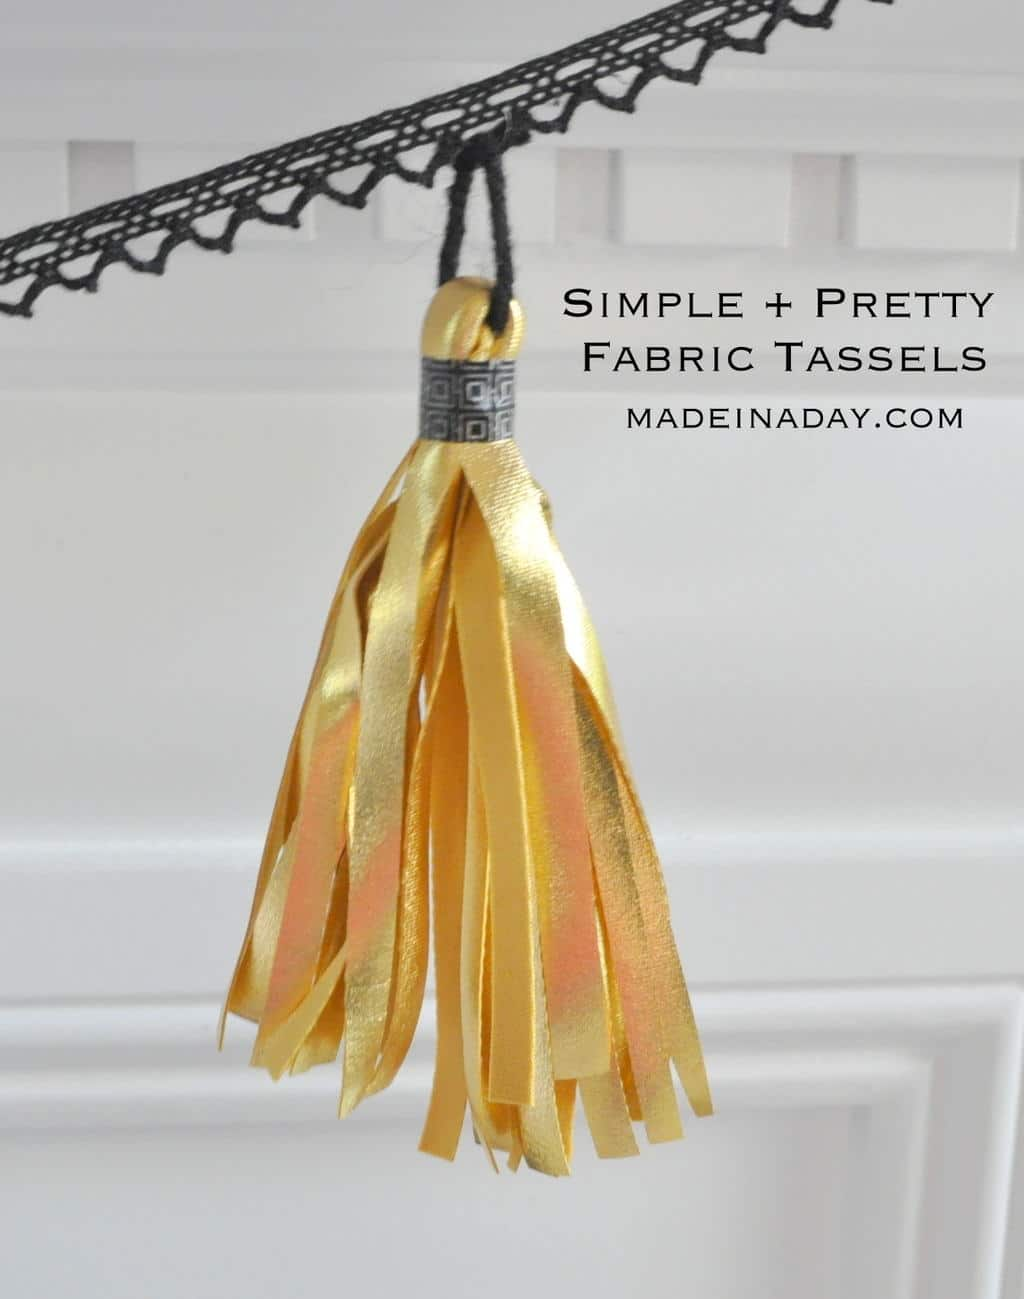 Simple Fabric Tassels Made In A Day